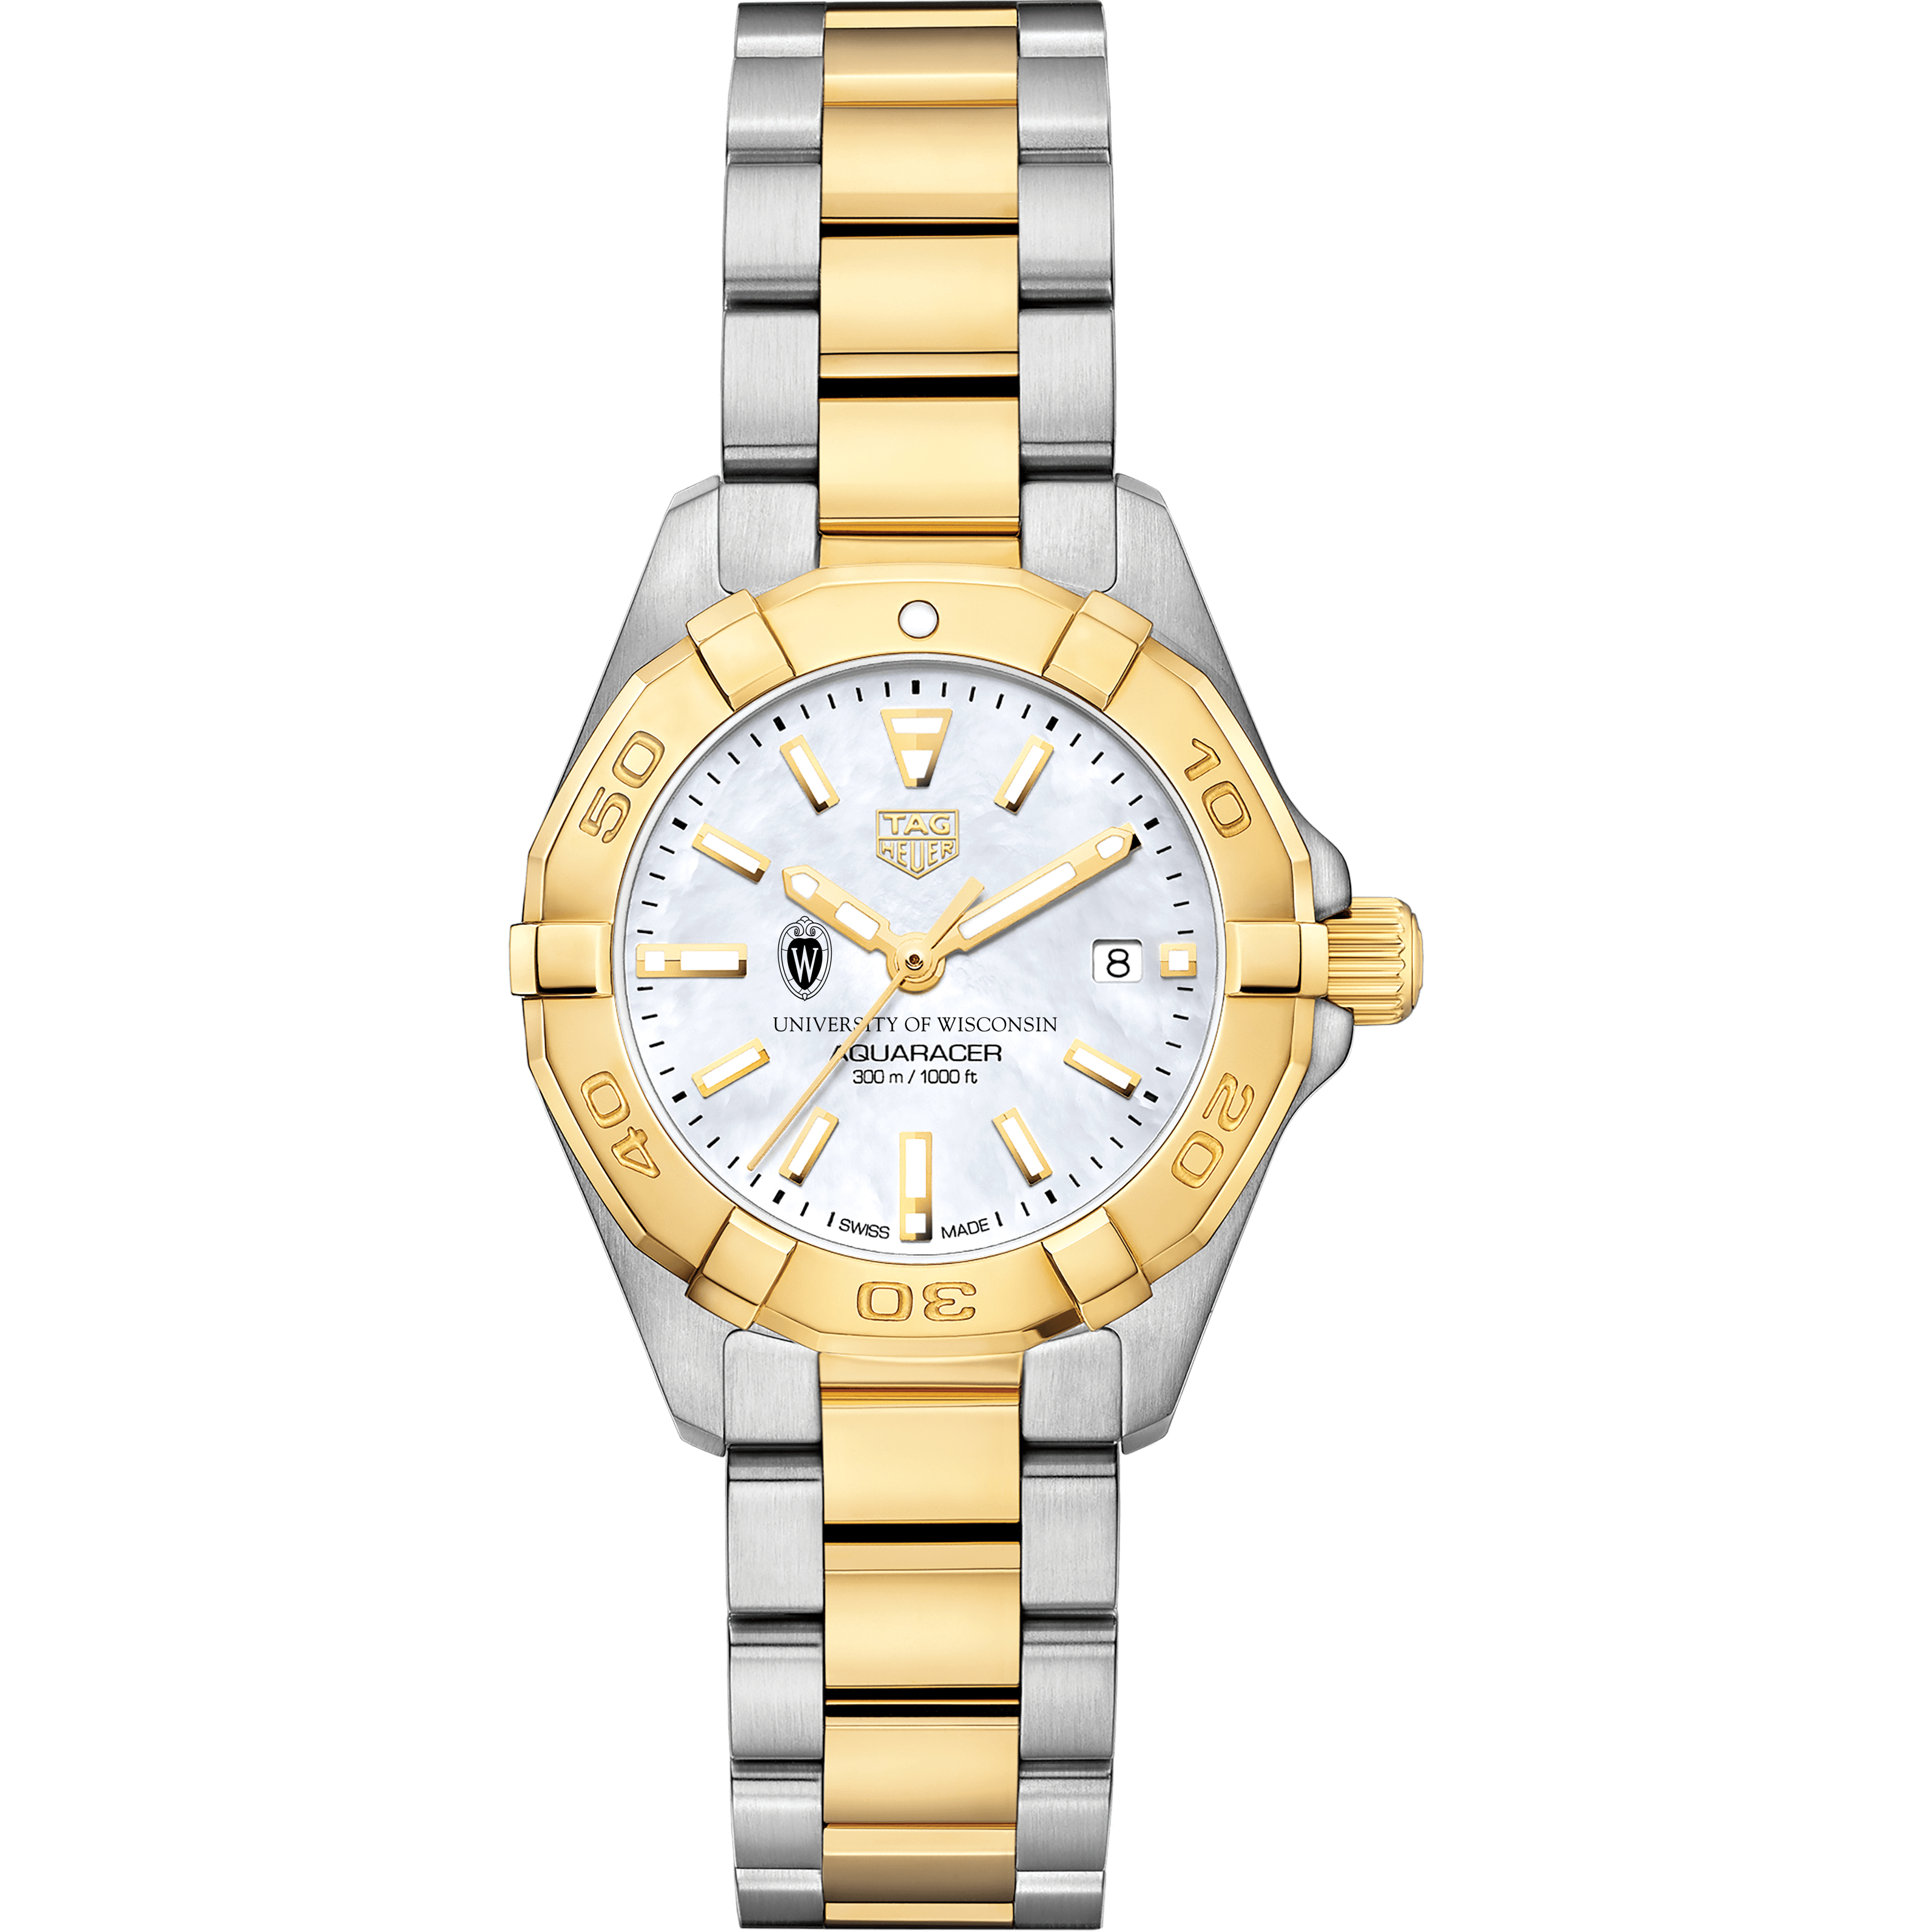 University of Wisconsin TAG Heuer Two-Tone Aquaracer for Women - Image 2